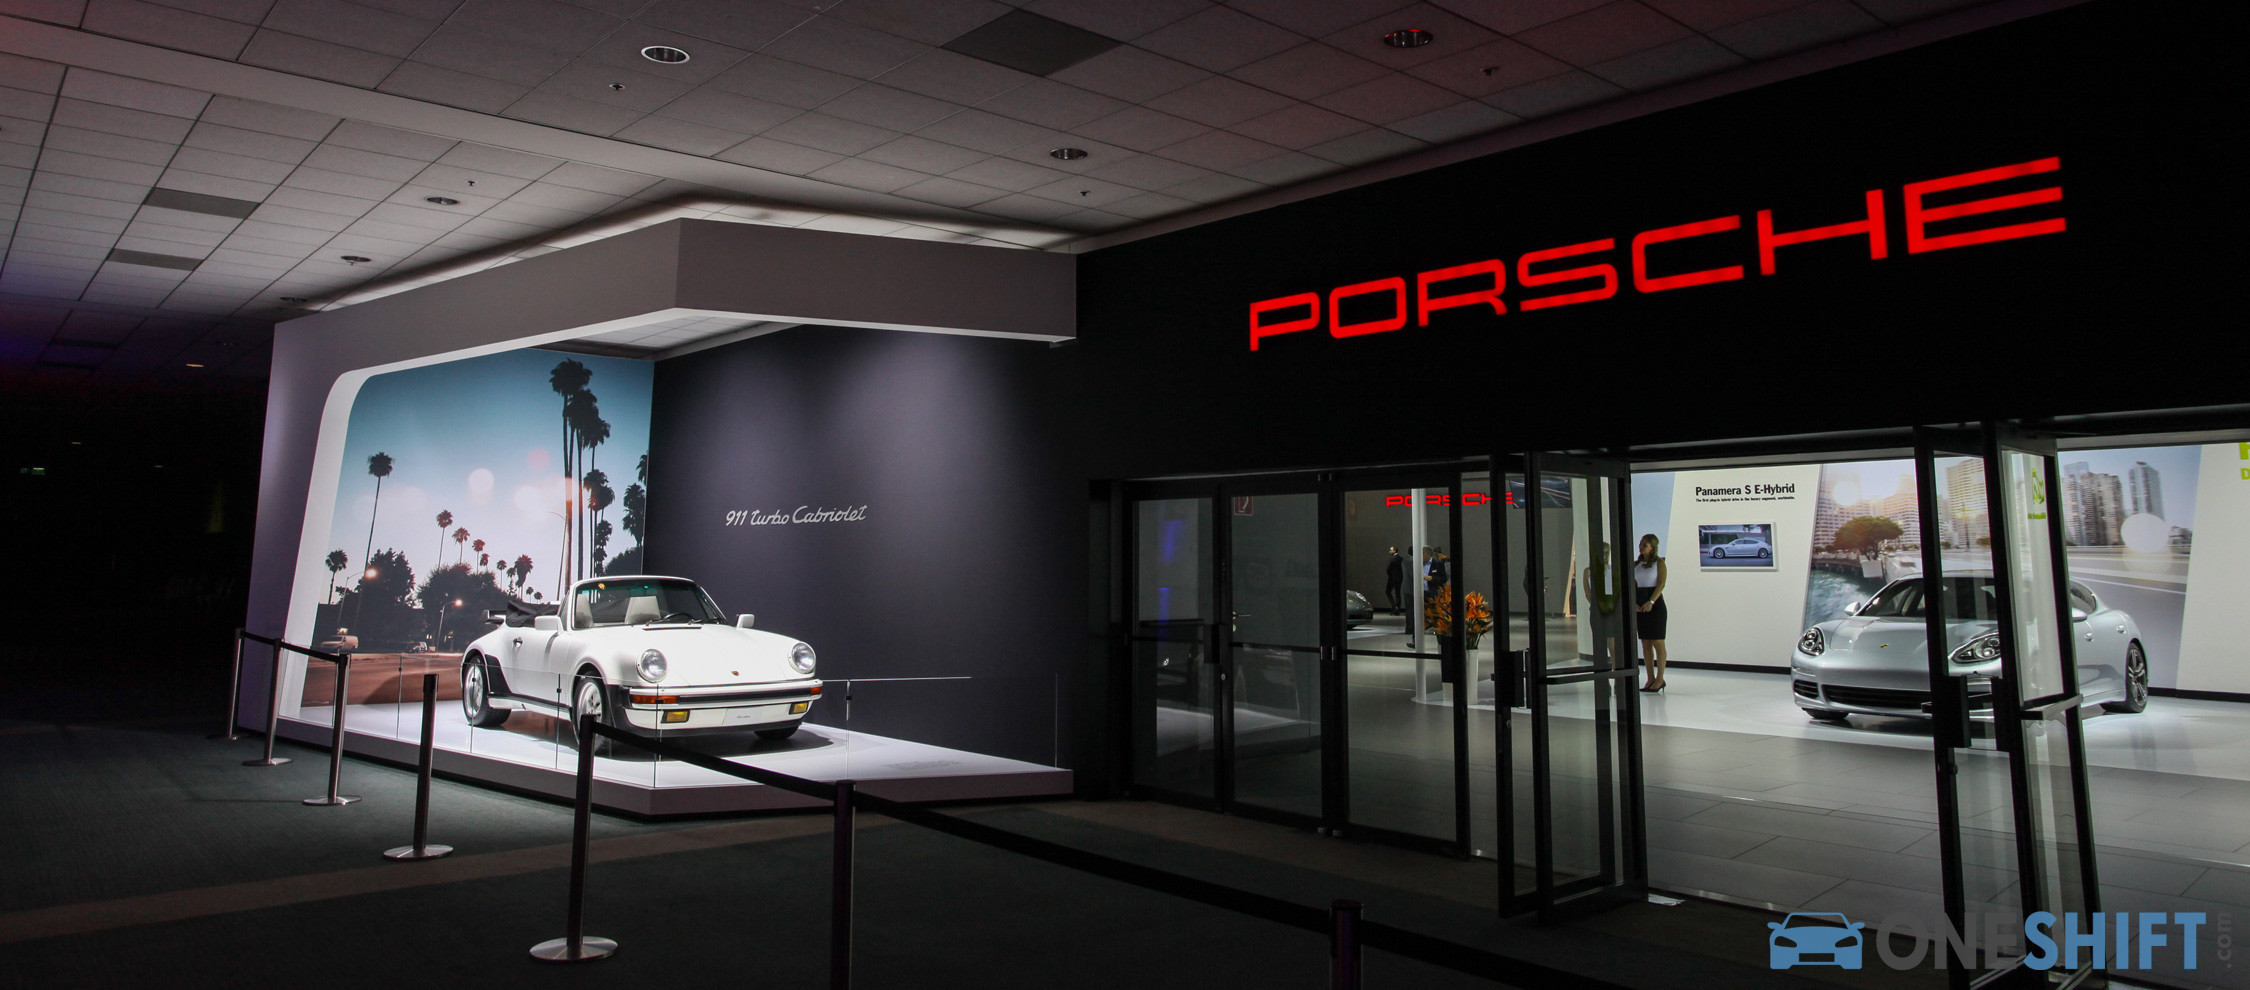 With the booming market in China, it's hard to forget that North America also represents a significant market for the German sports car maker. The grandeur of the Porsche booth is testament to that fact.